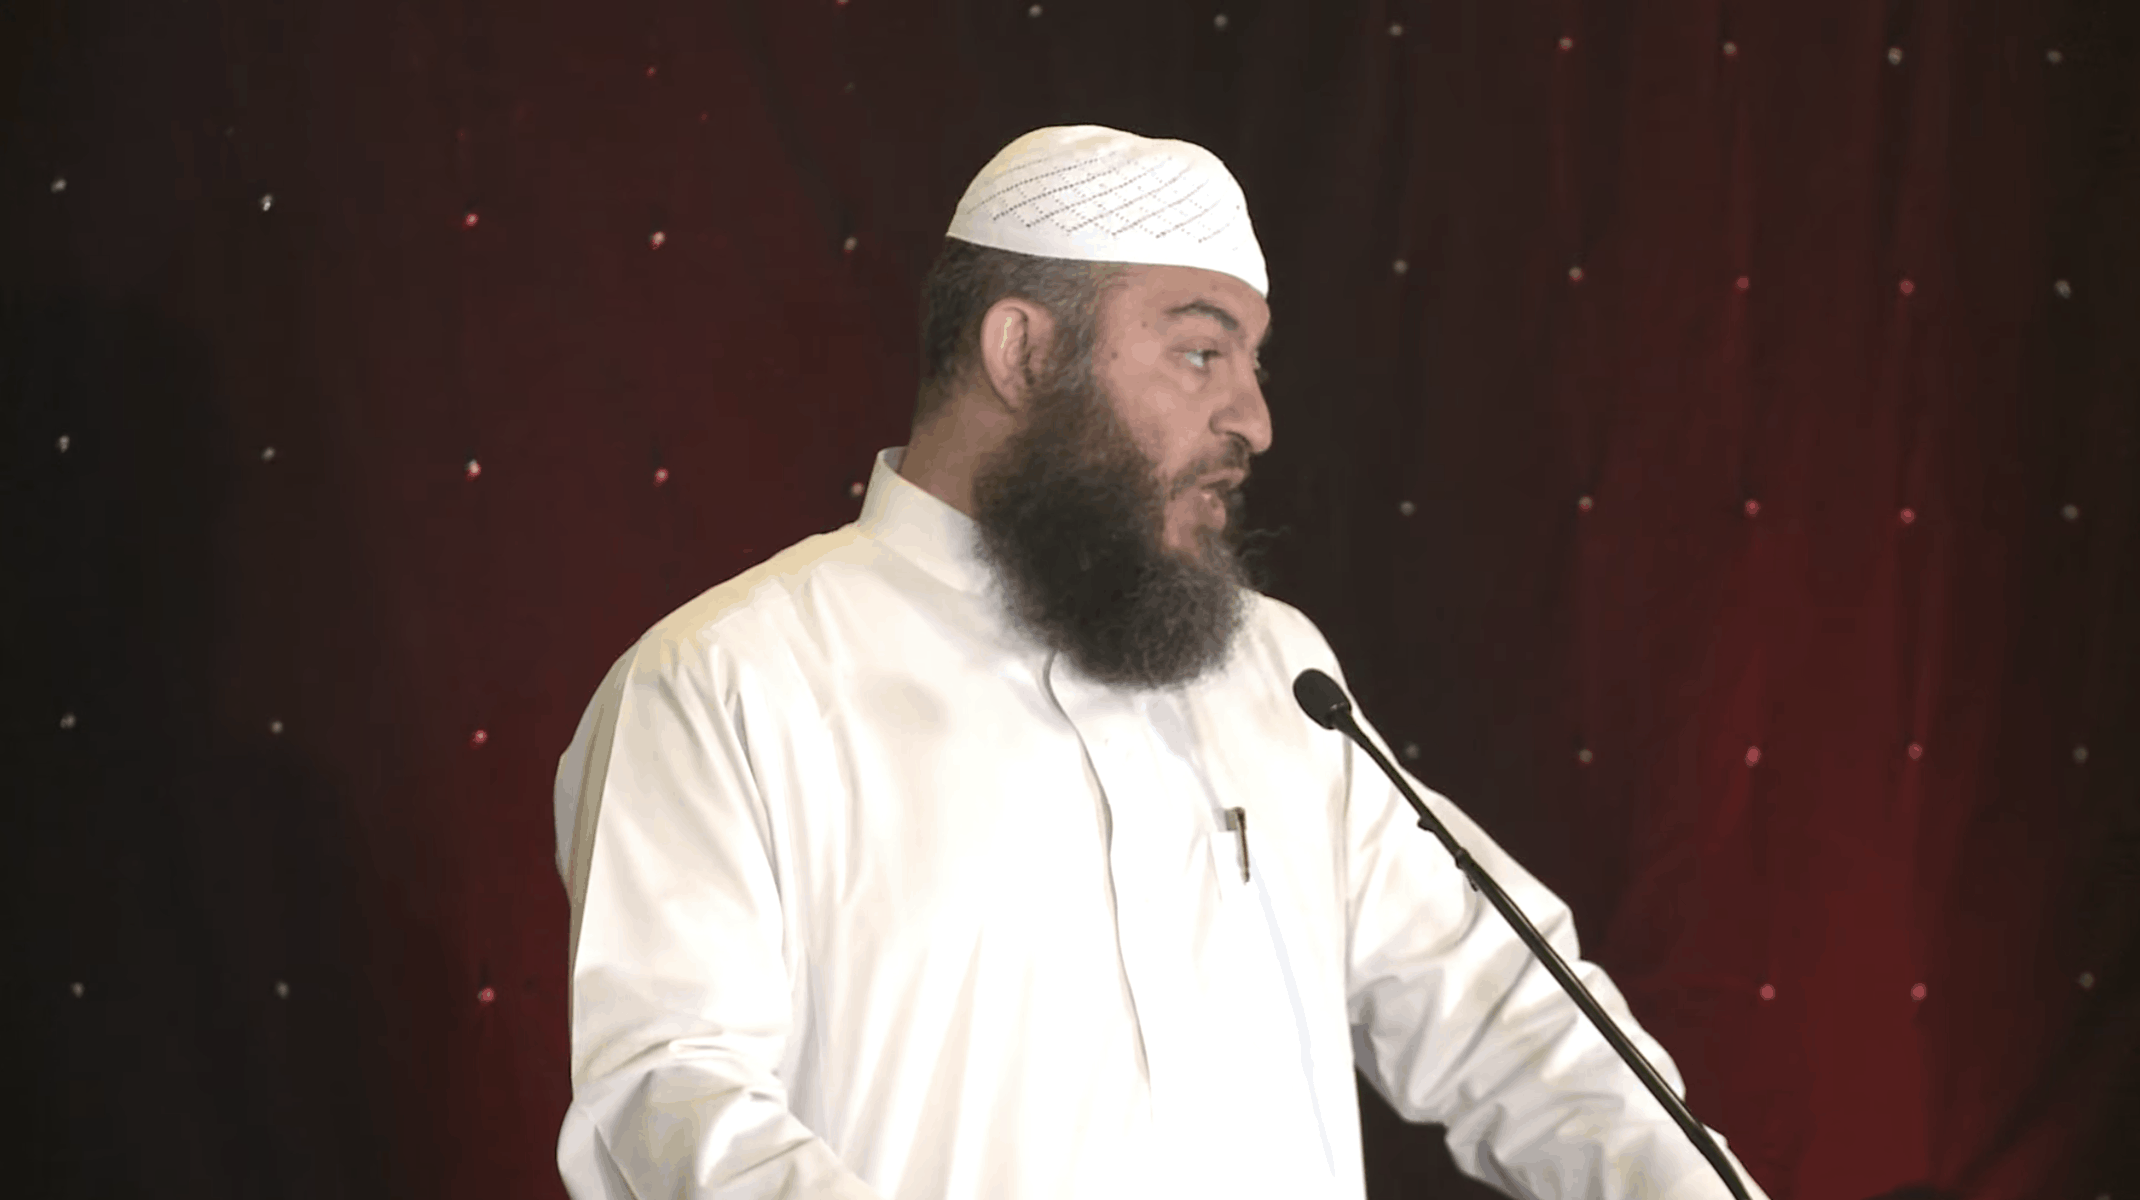 Haitham al-Haddad – The Justice of Islam